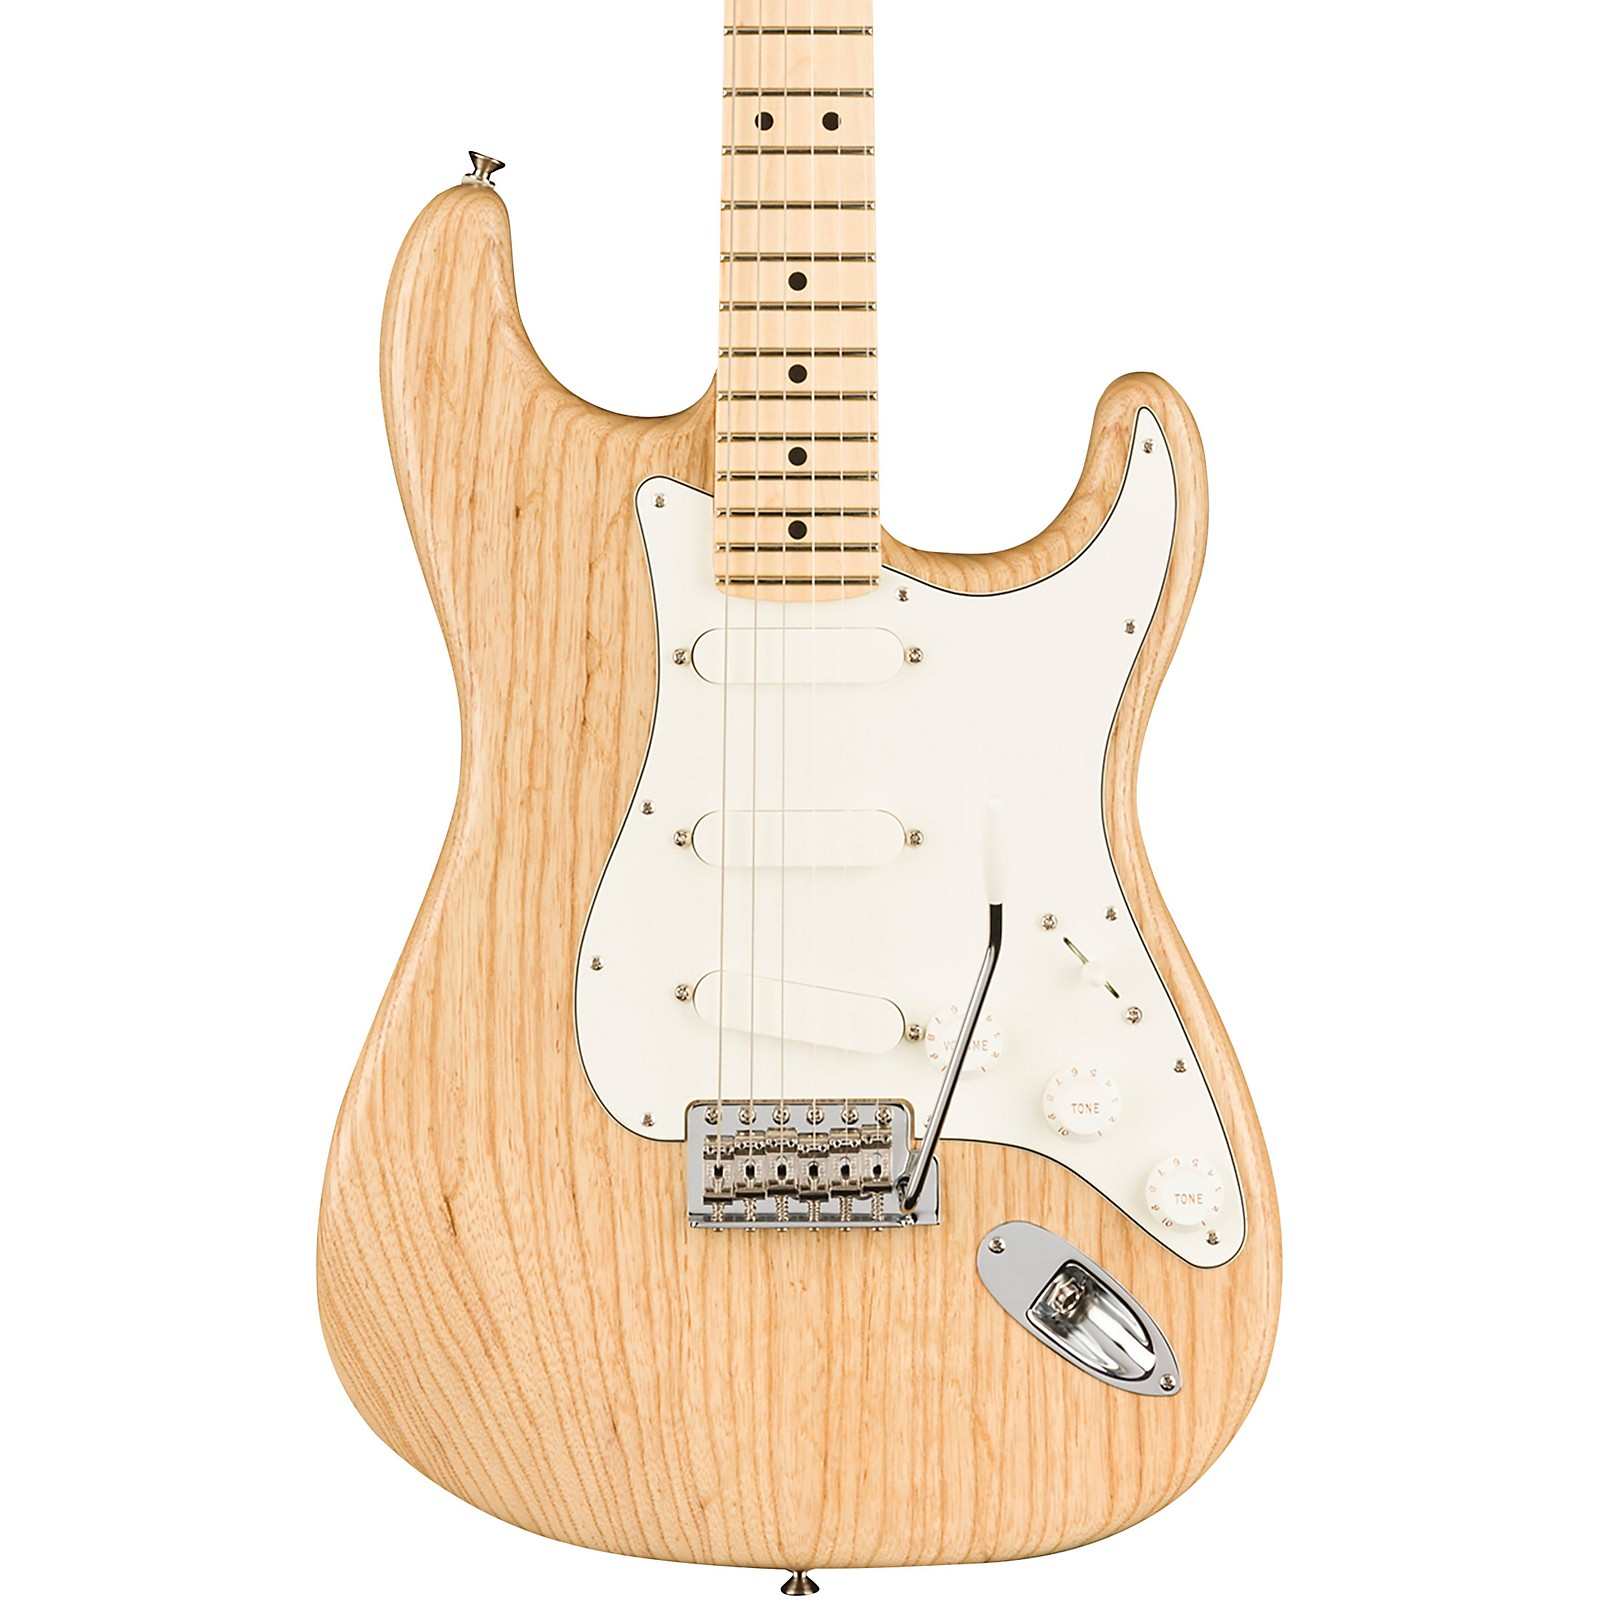 Fender American Performer Raw Ash Stratocaster Limited Edition Electric Guitar